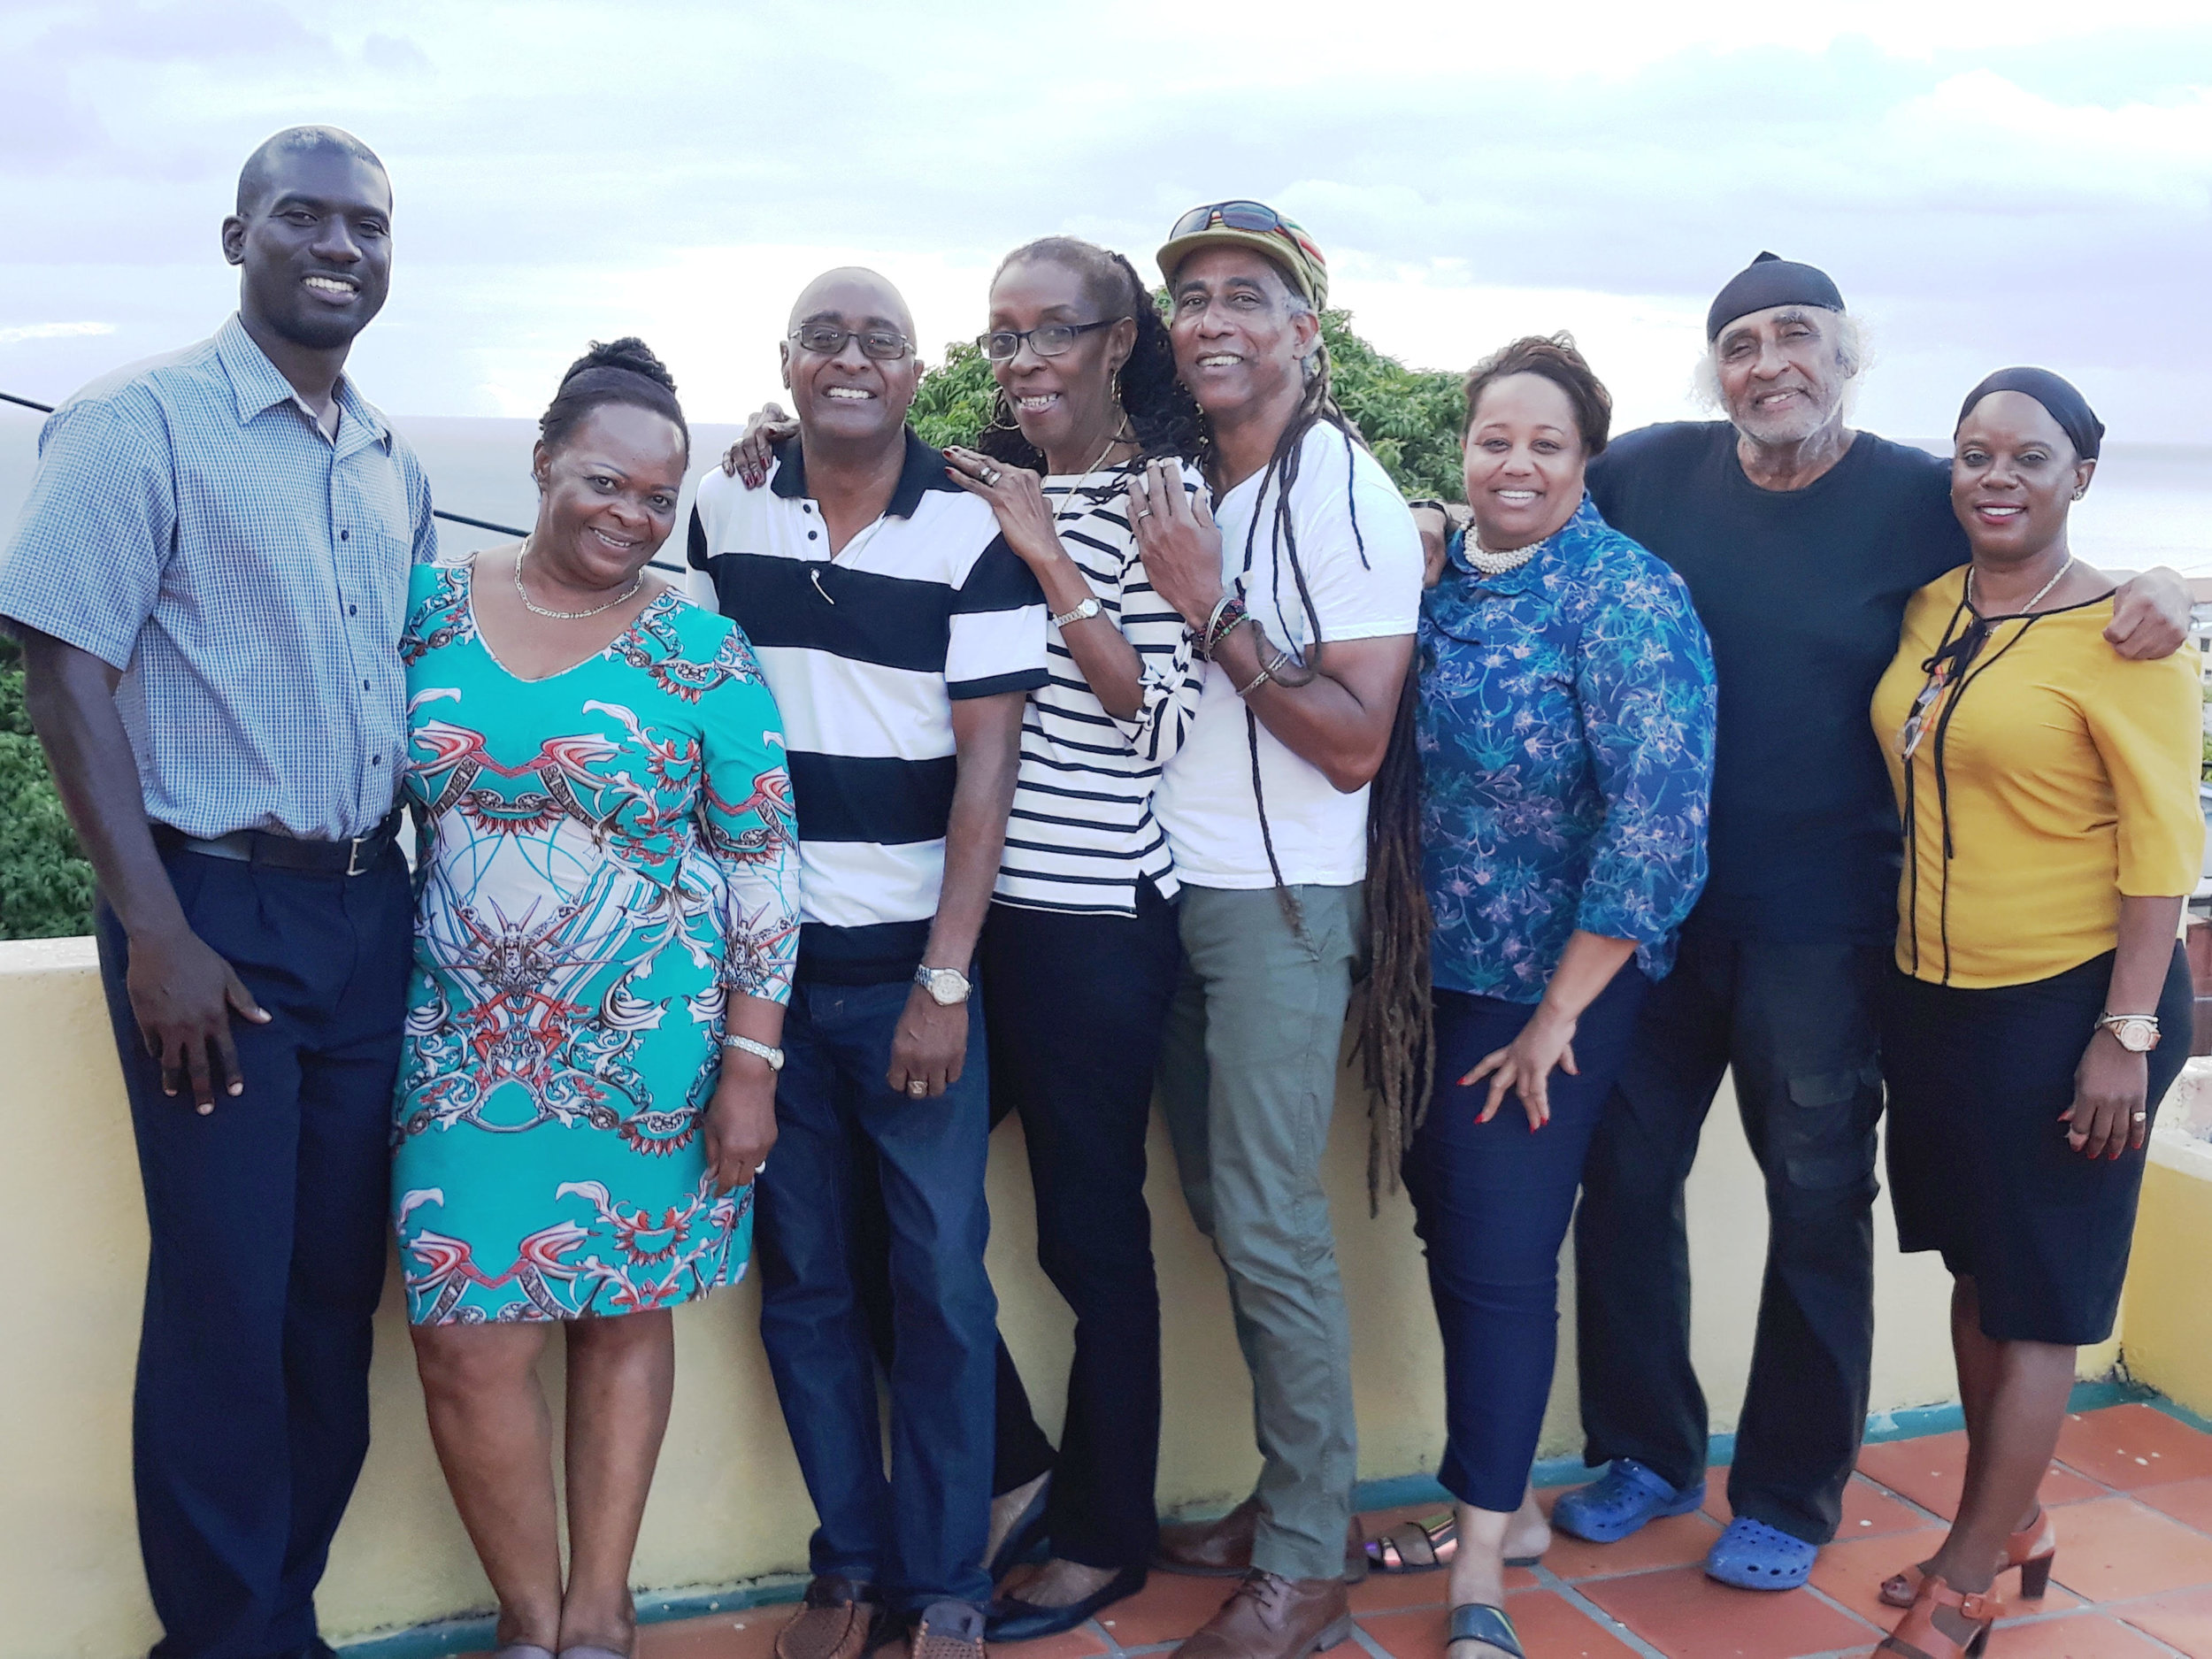 A close-knit family of tent managers and organisers (l tor) Tristan Layne the new Cultural Officer Music at the NCF, Eleanor Rice, Winston Alleyne, Merle Niles, Adisa 'Aja' Andwele the NCF Producer for Pic-O-De-Crop, Sharon Carew-White, Gilbert Roberts and Juliana Sealy.